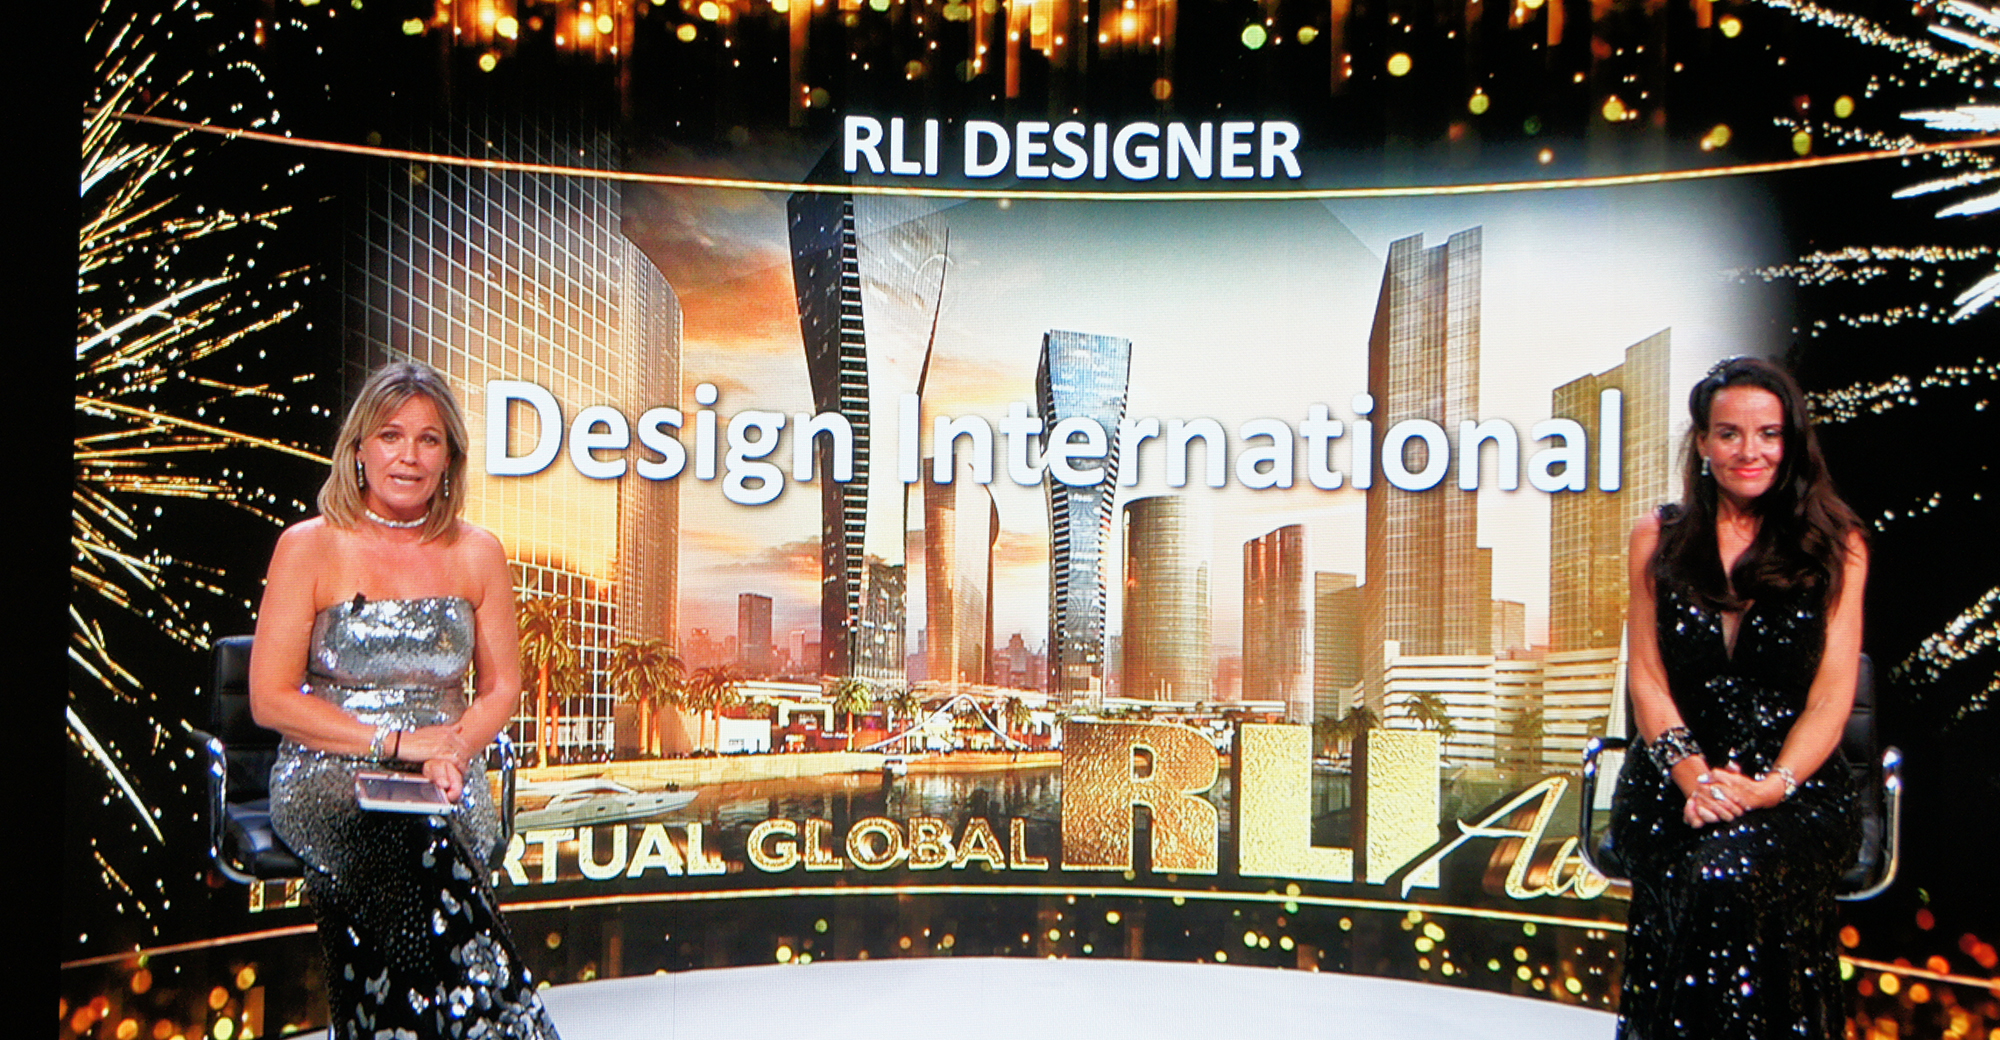 Designer of The Year - Global RLI Awards 2020